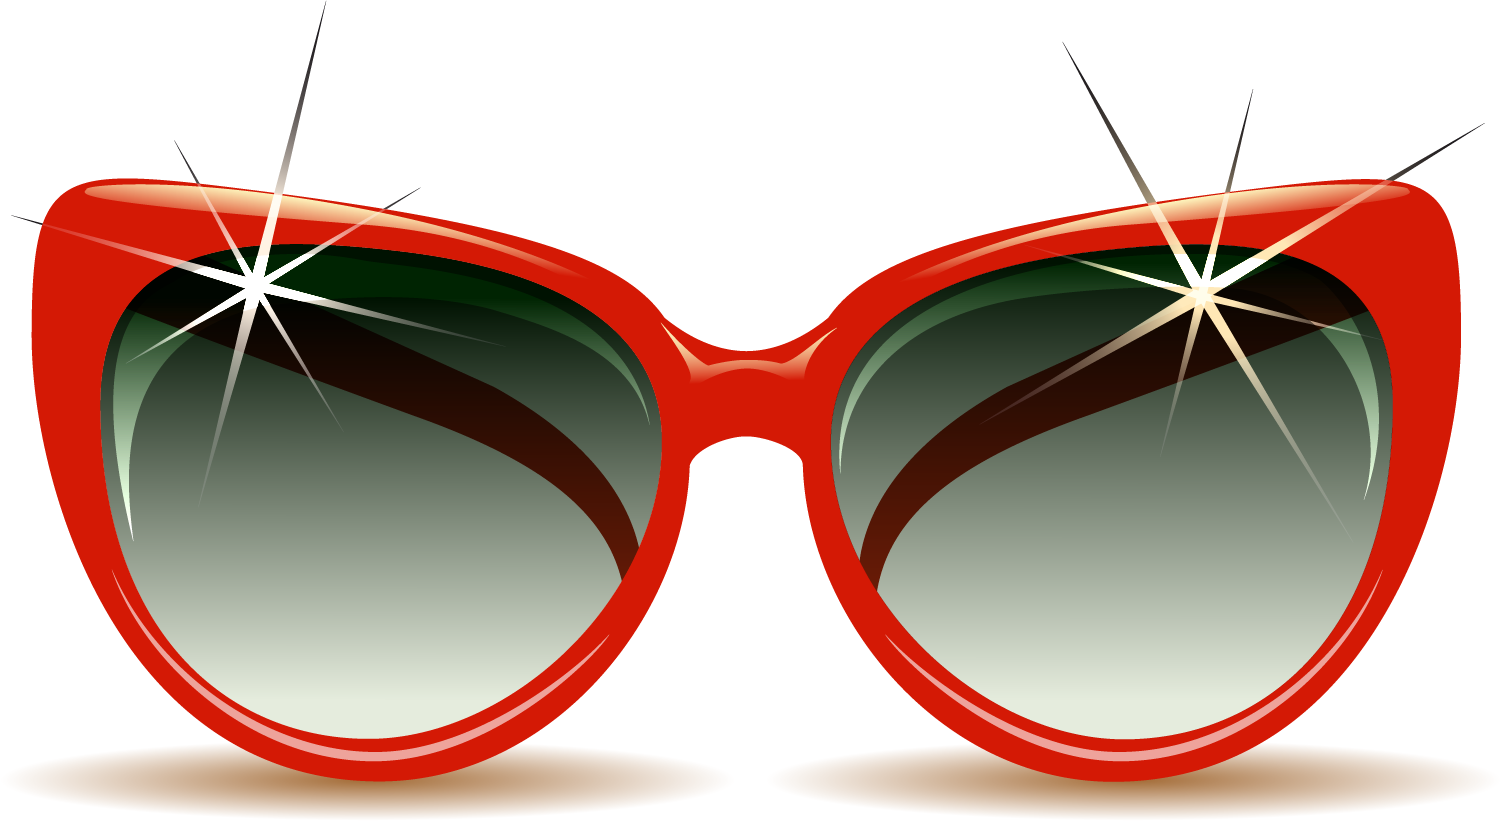 Vision clipart red. Sunglasses beach summer clip